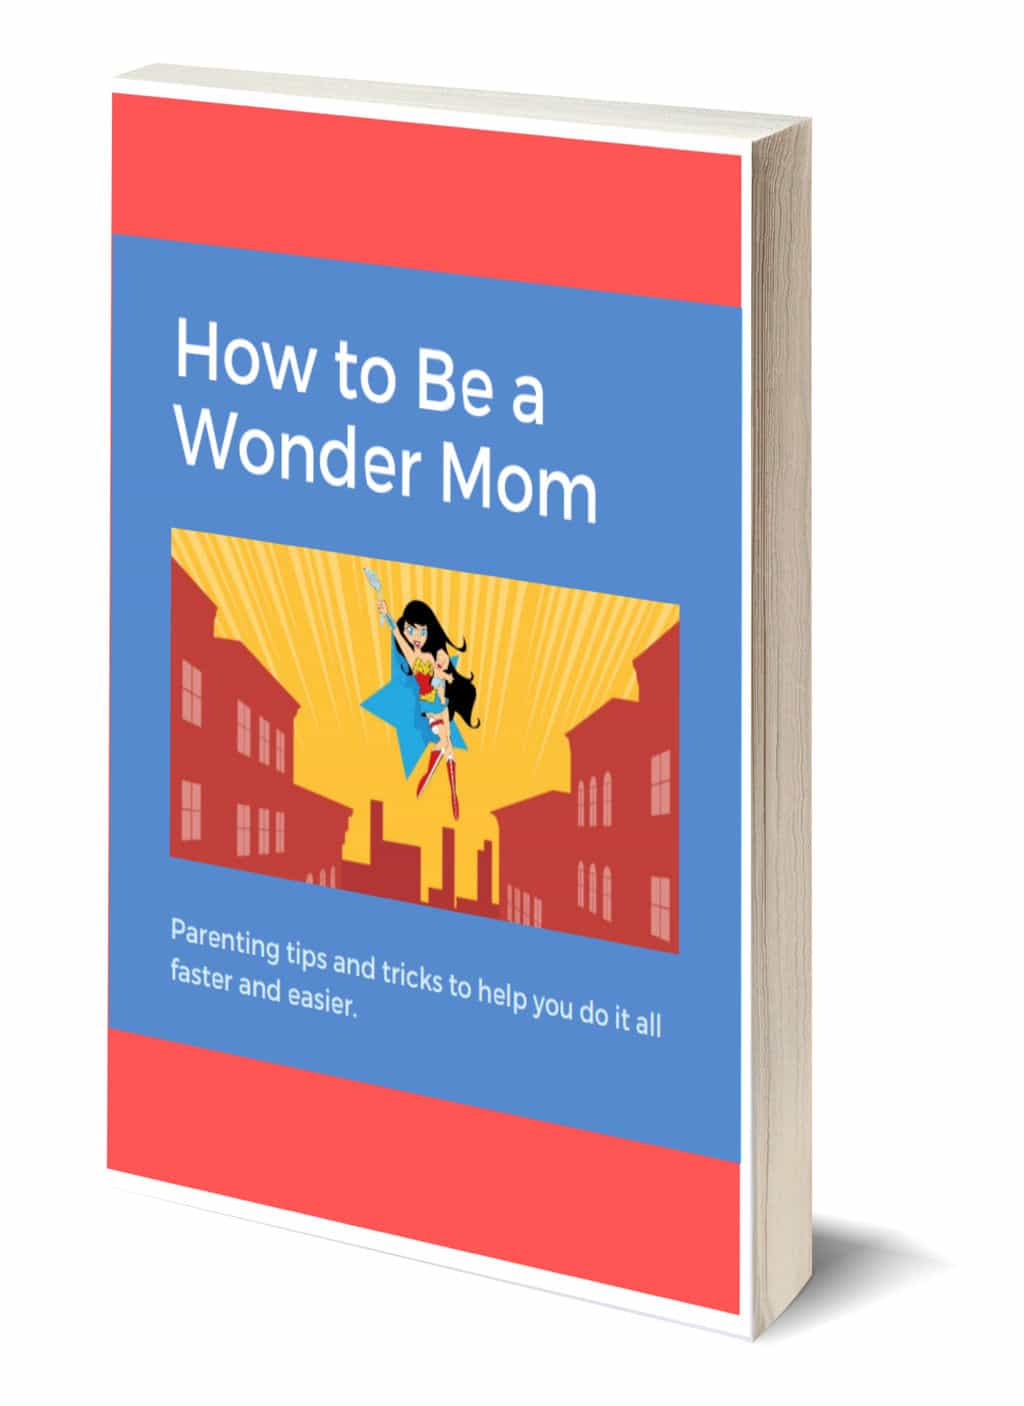 How to Be a Wonder Mom